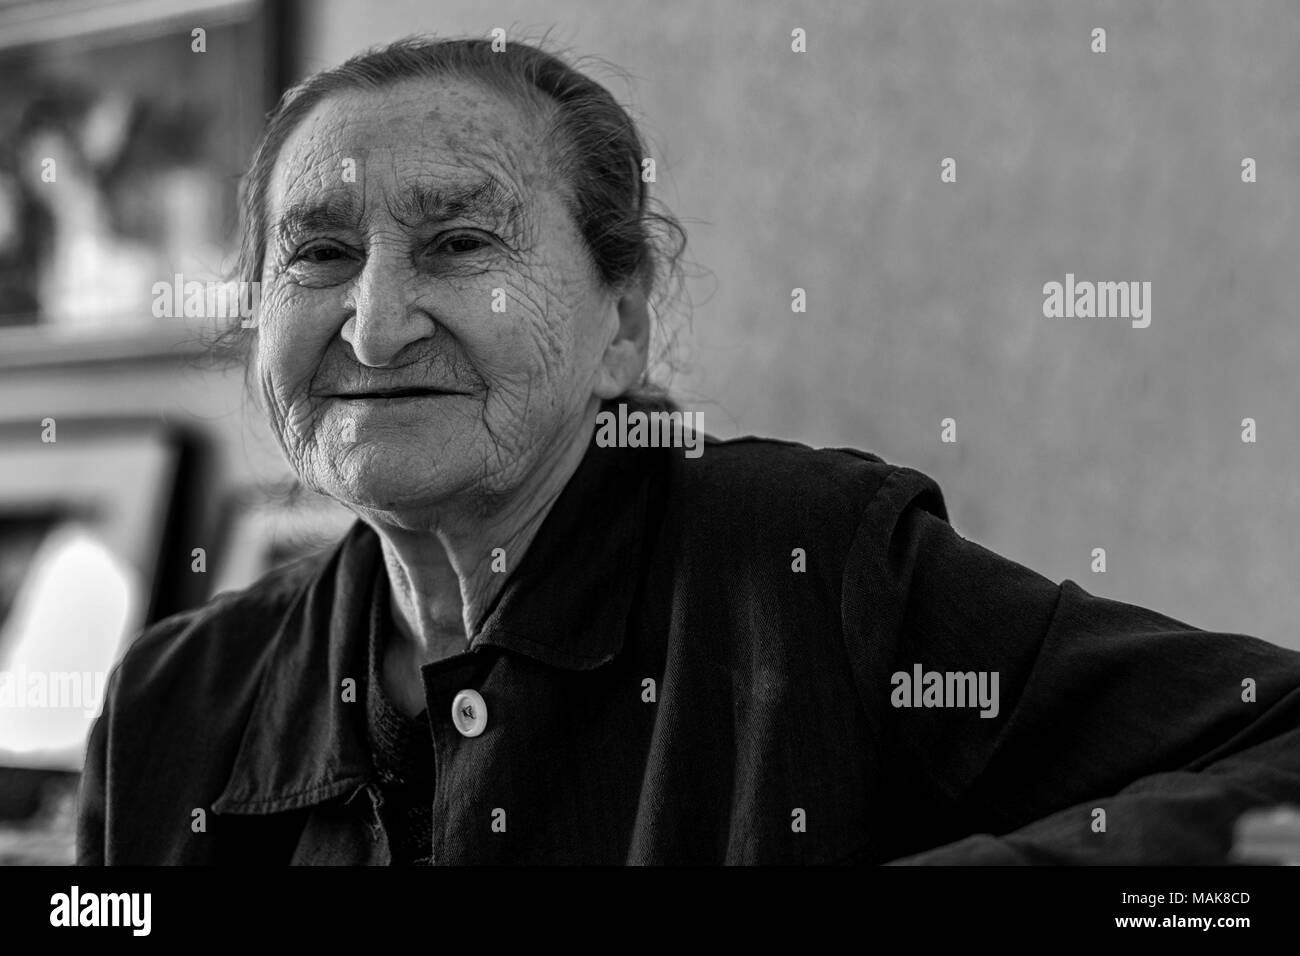 Beautiful 80 plus year old senior woman portrait. Black and white image of elderly woman looking at camera smiling. - Stock Image